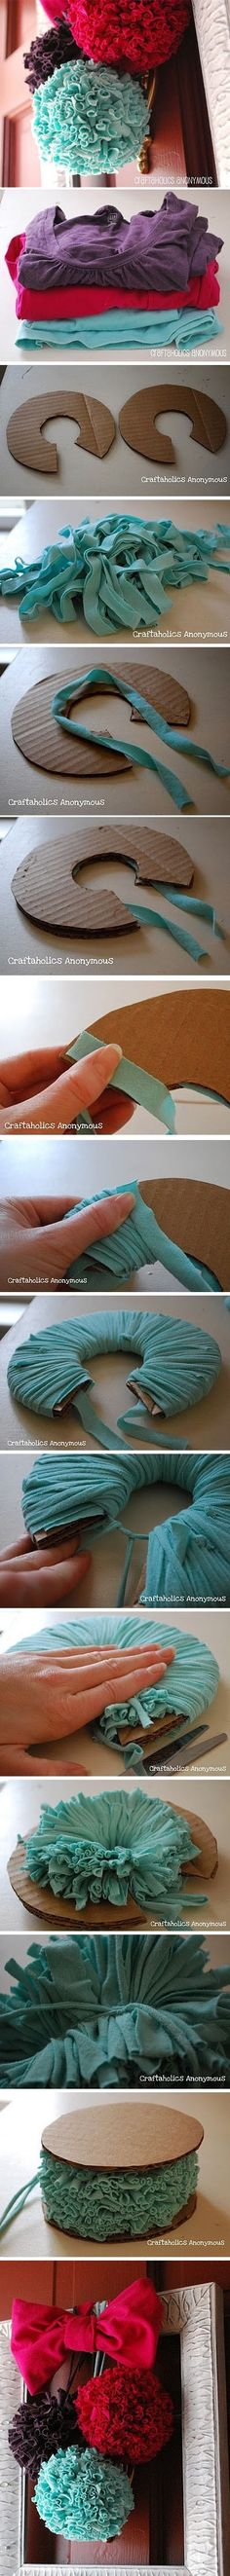 DIY: Interesting Easy Craft Ideas, @Karen Jacot Jacot Smith could totally do these!!!